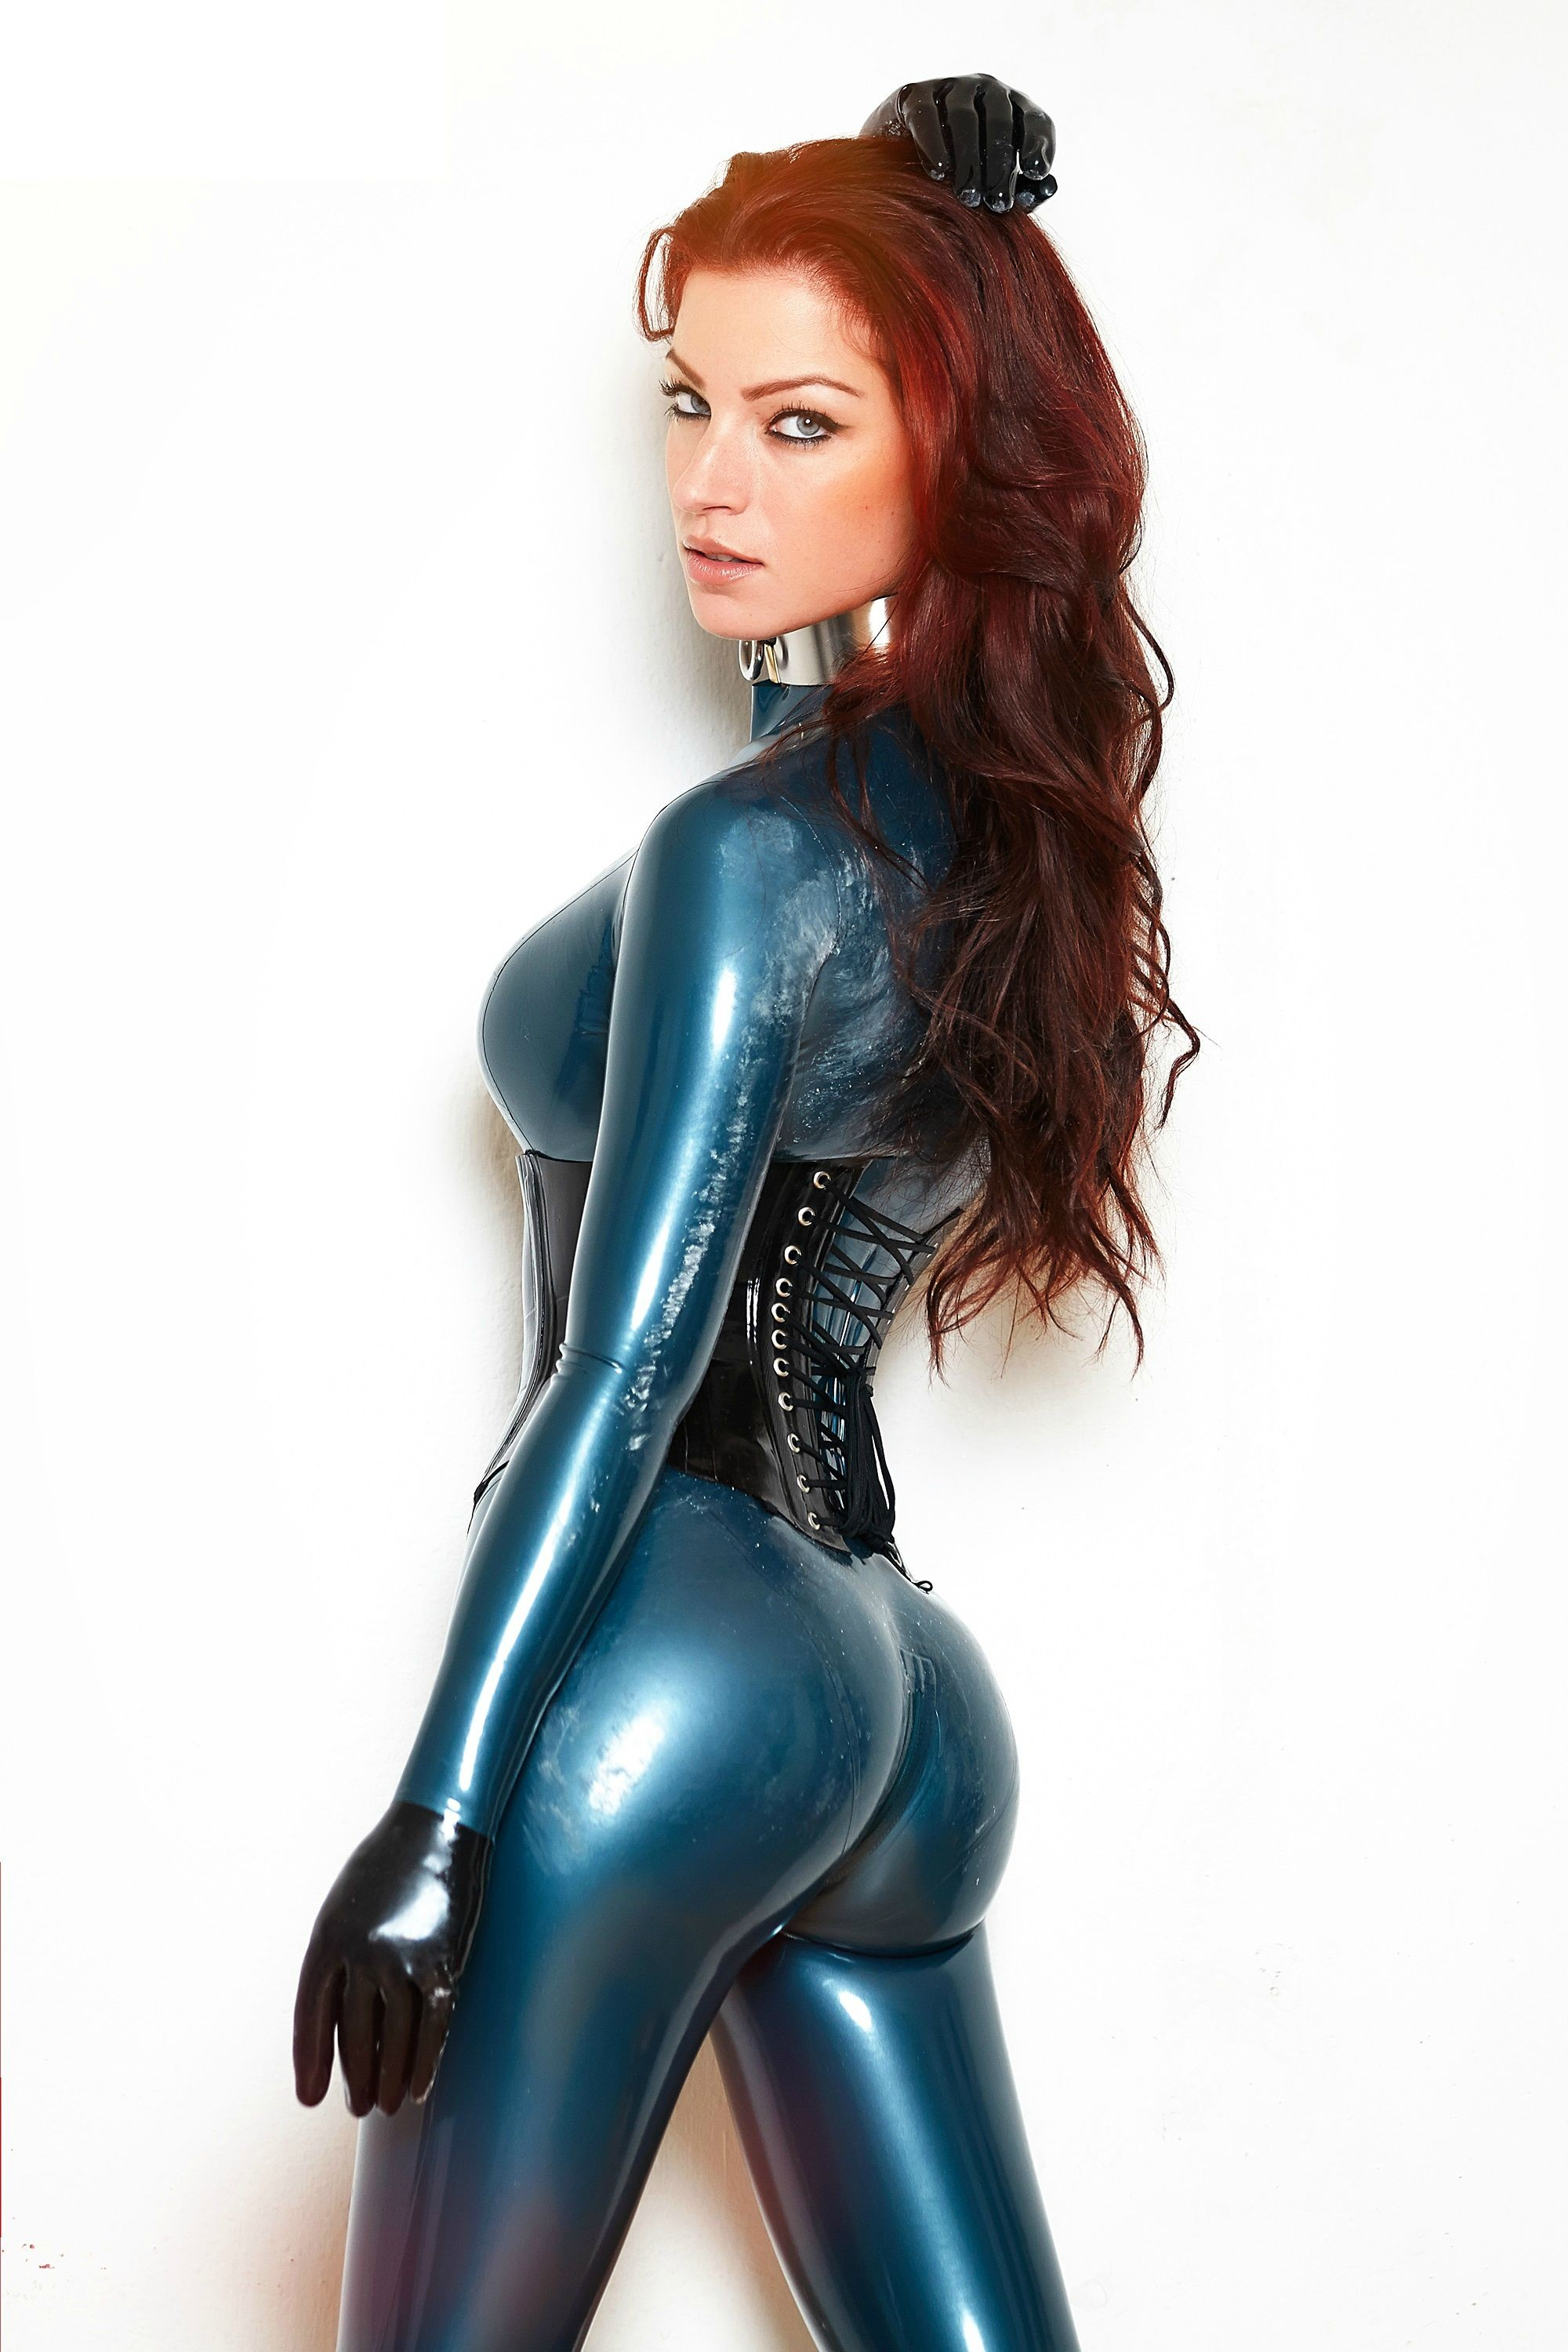 brunette with nice tits riding a cock #latex #corset #balletboots #longhair #perfectlegs #greatbody #gloves #catsuit #wanttofuckher #wanthertobemytoy #perfecttoy #prefectass